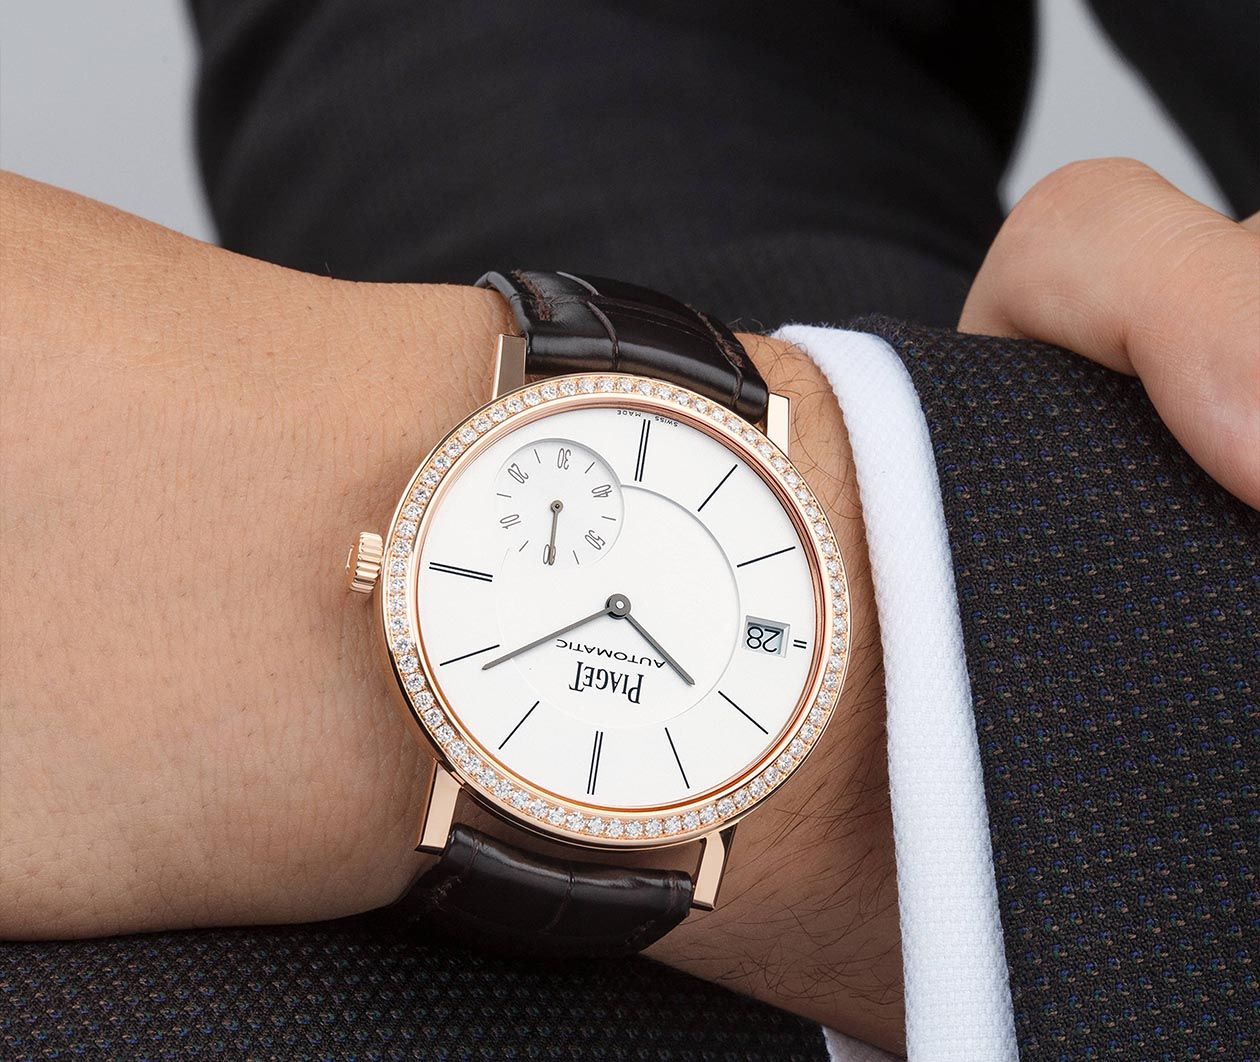 Piaget Altiplano watch G0A38139 Hover 2 FINAL